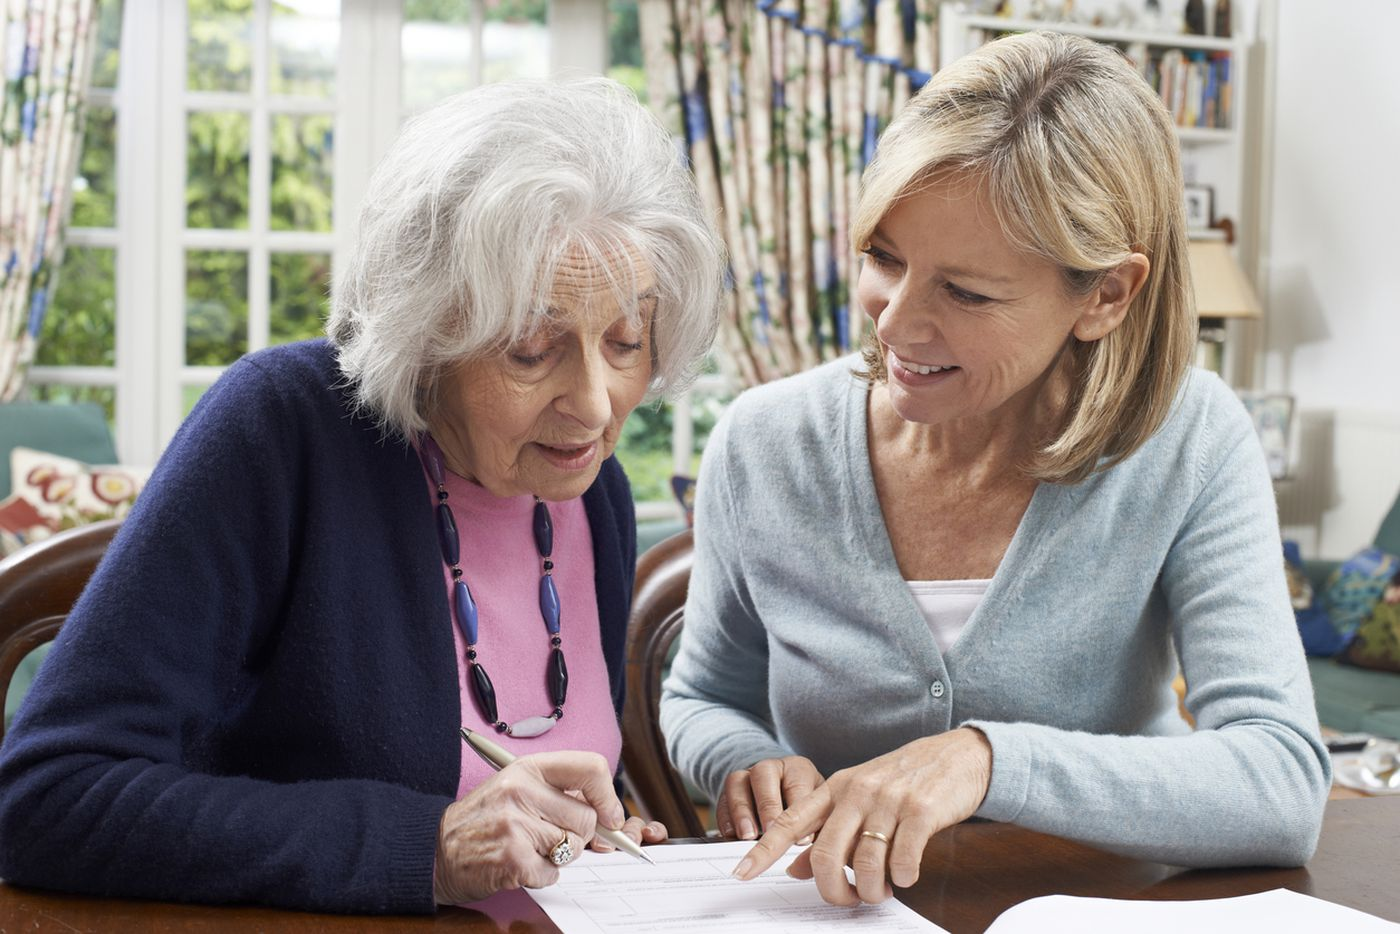 Q&A: How can I convince my aging parents to get their end-of-life affairs in order?